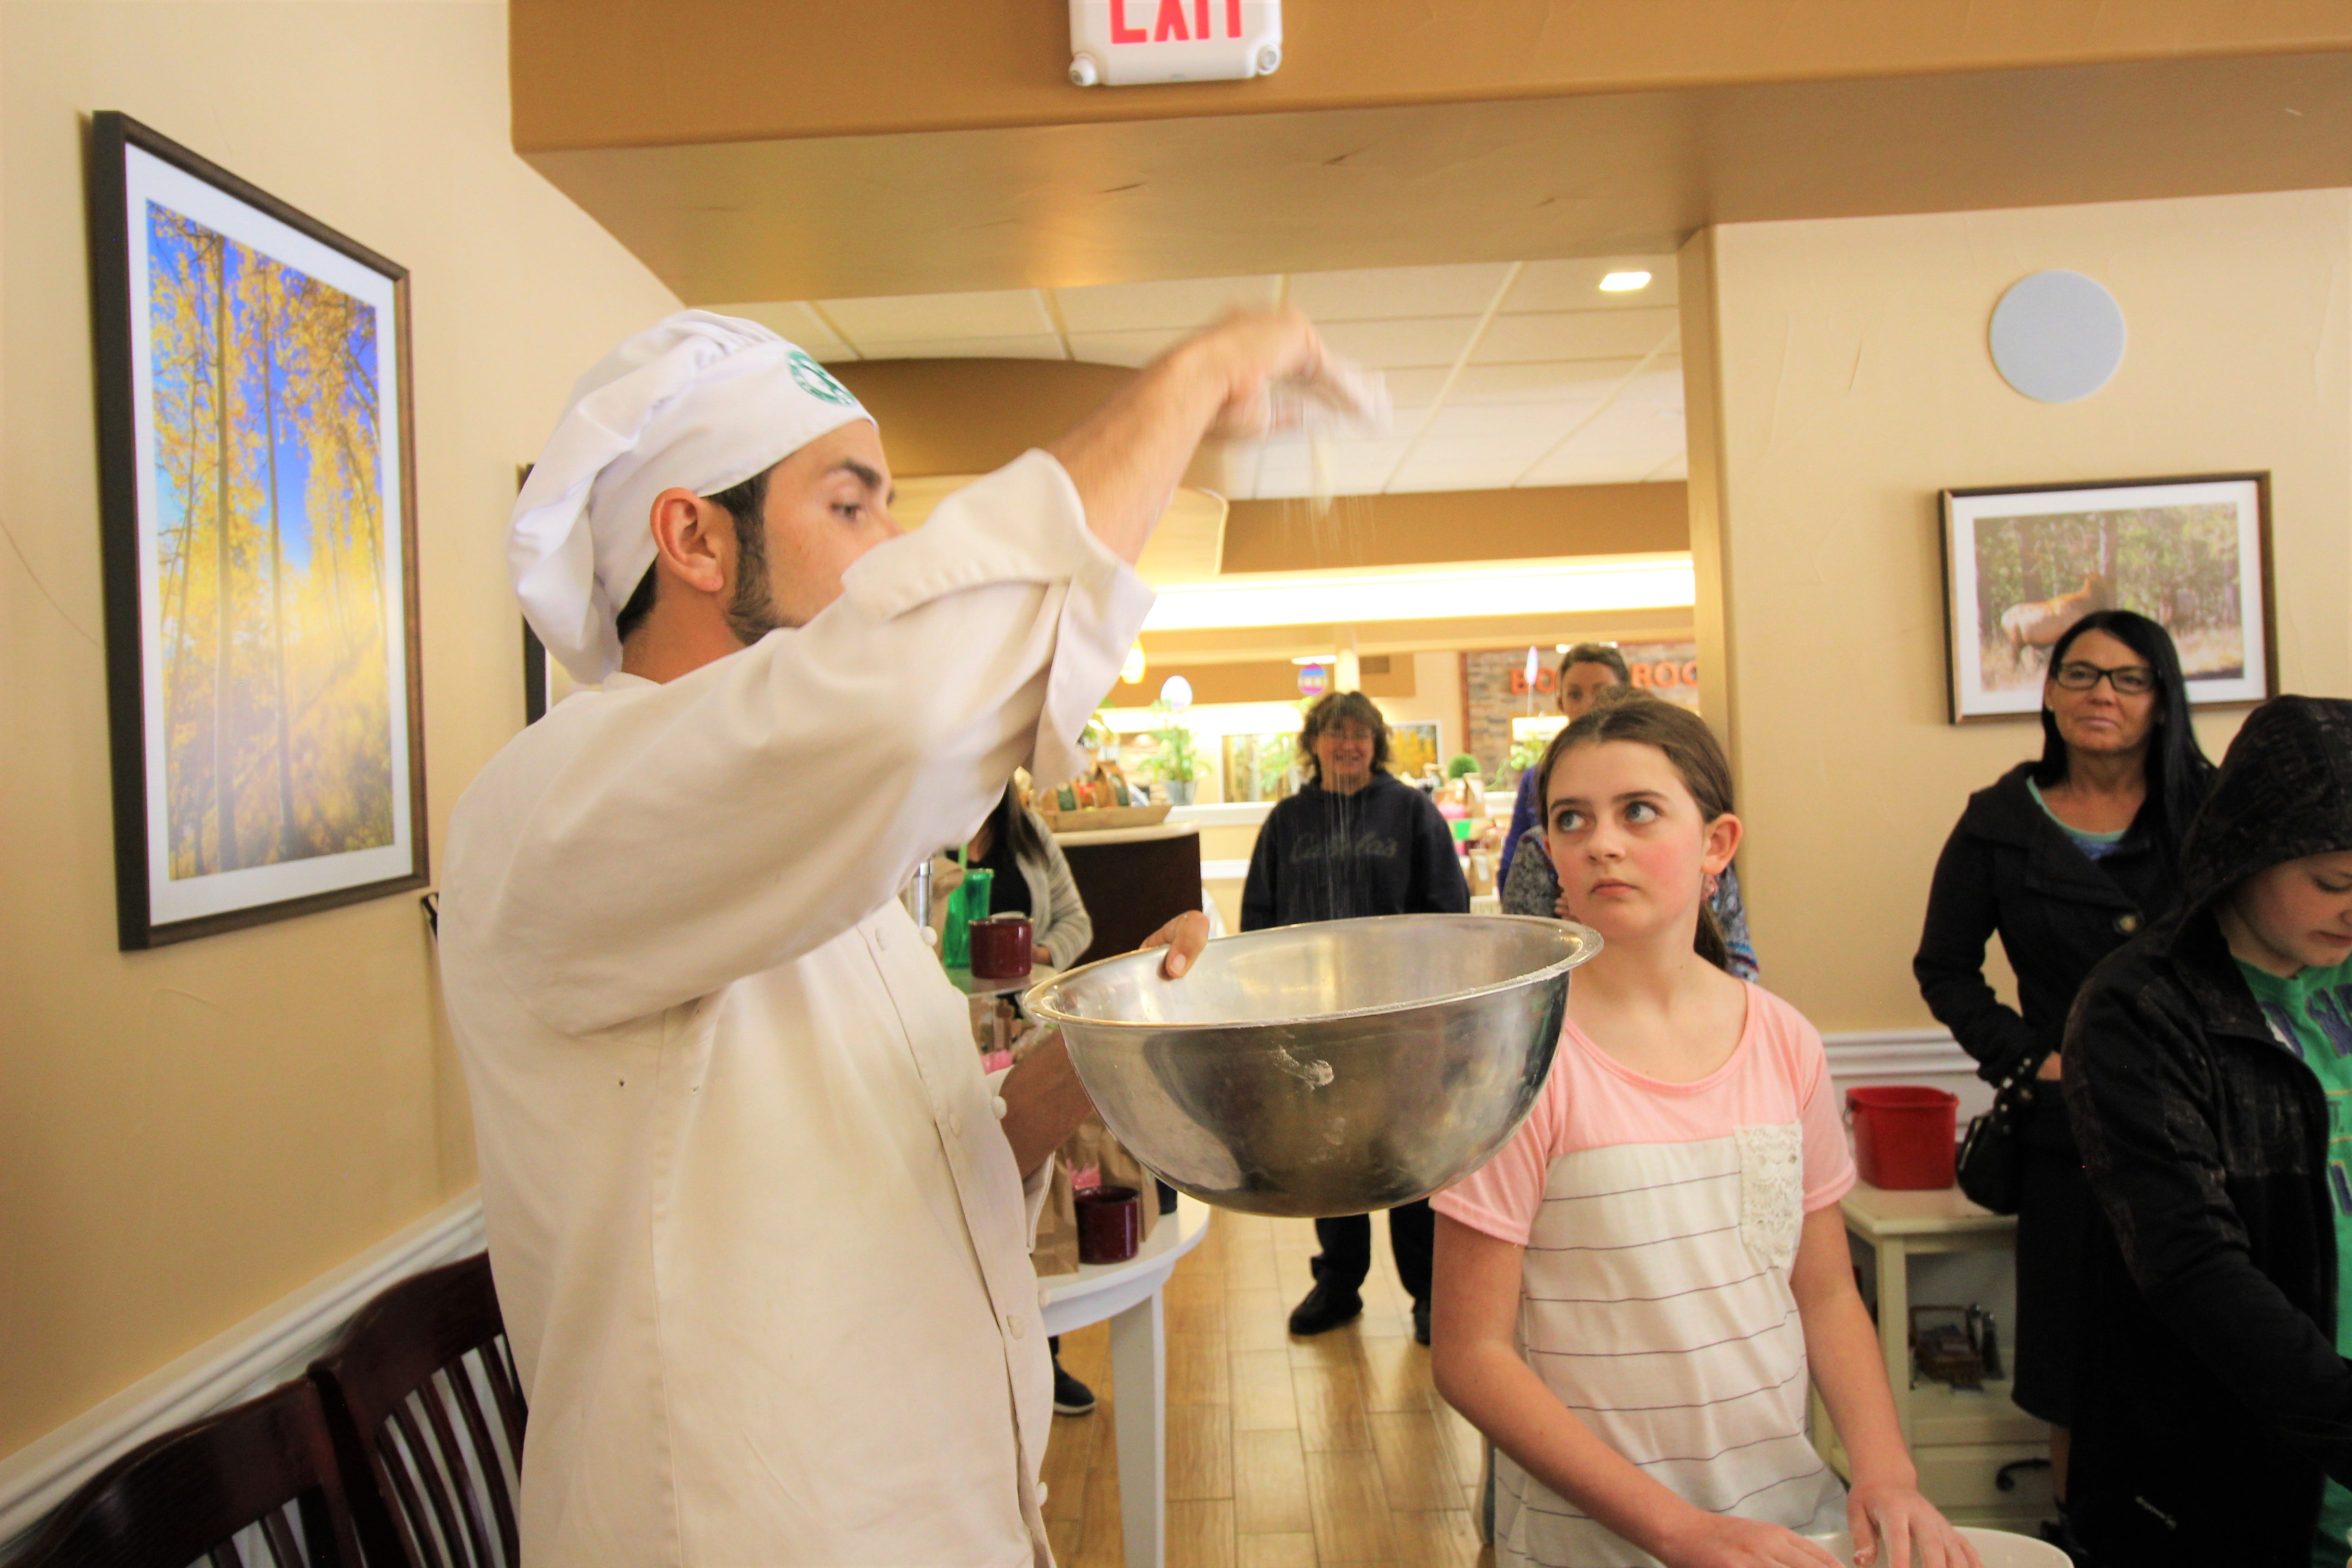 Steve Gomez shows children how to blend butter and flour using a traditional method, keeping the ingredients from becoming too warm, which will ruin the dough.